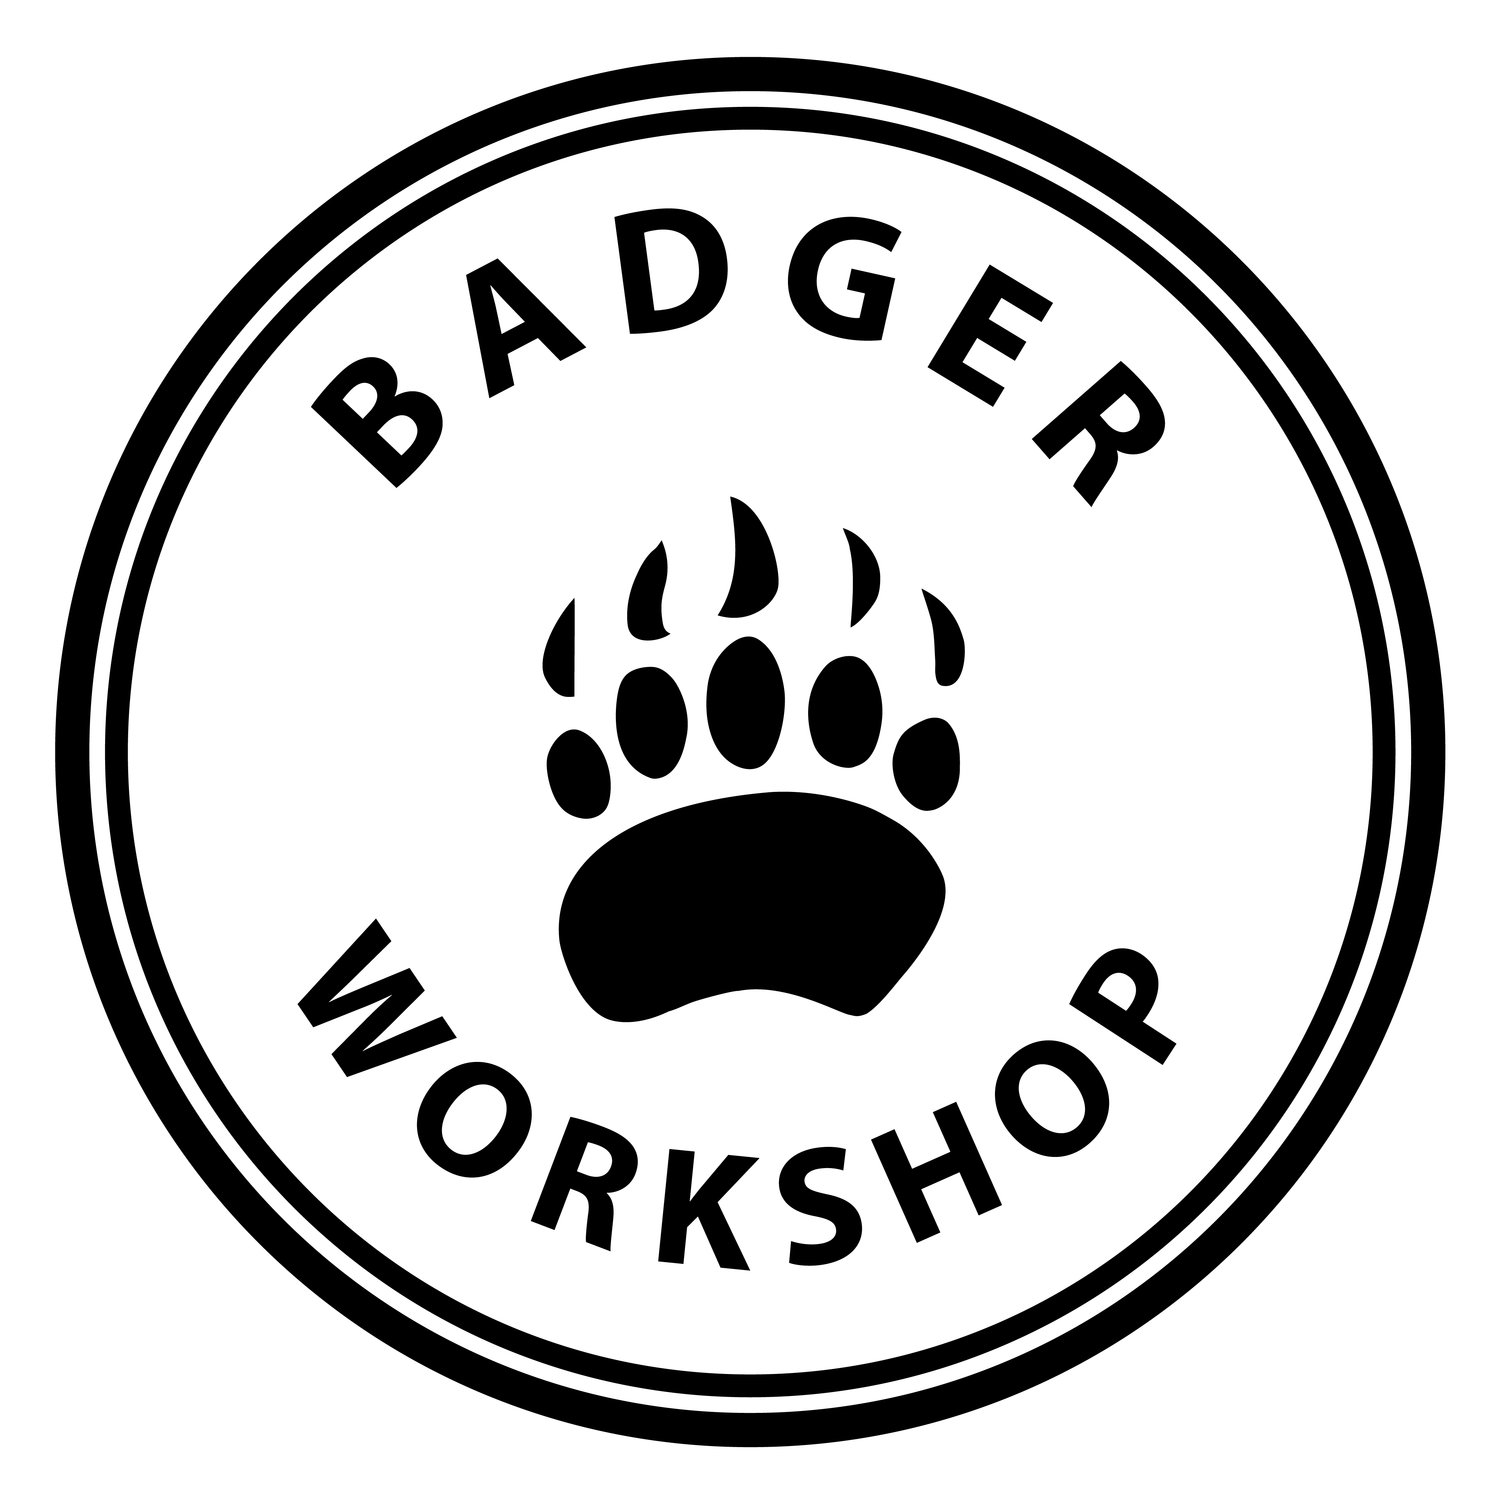 Badger Workshop